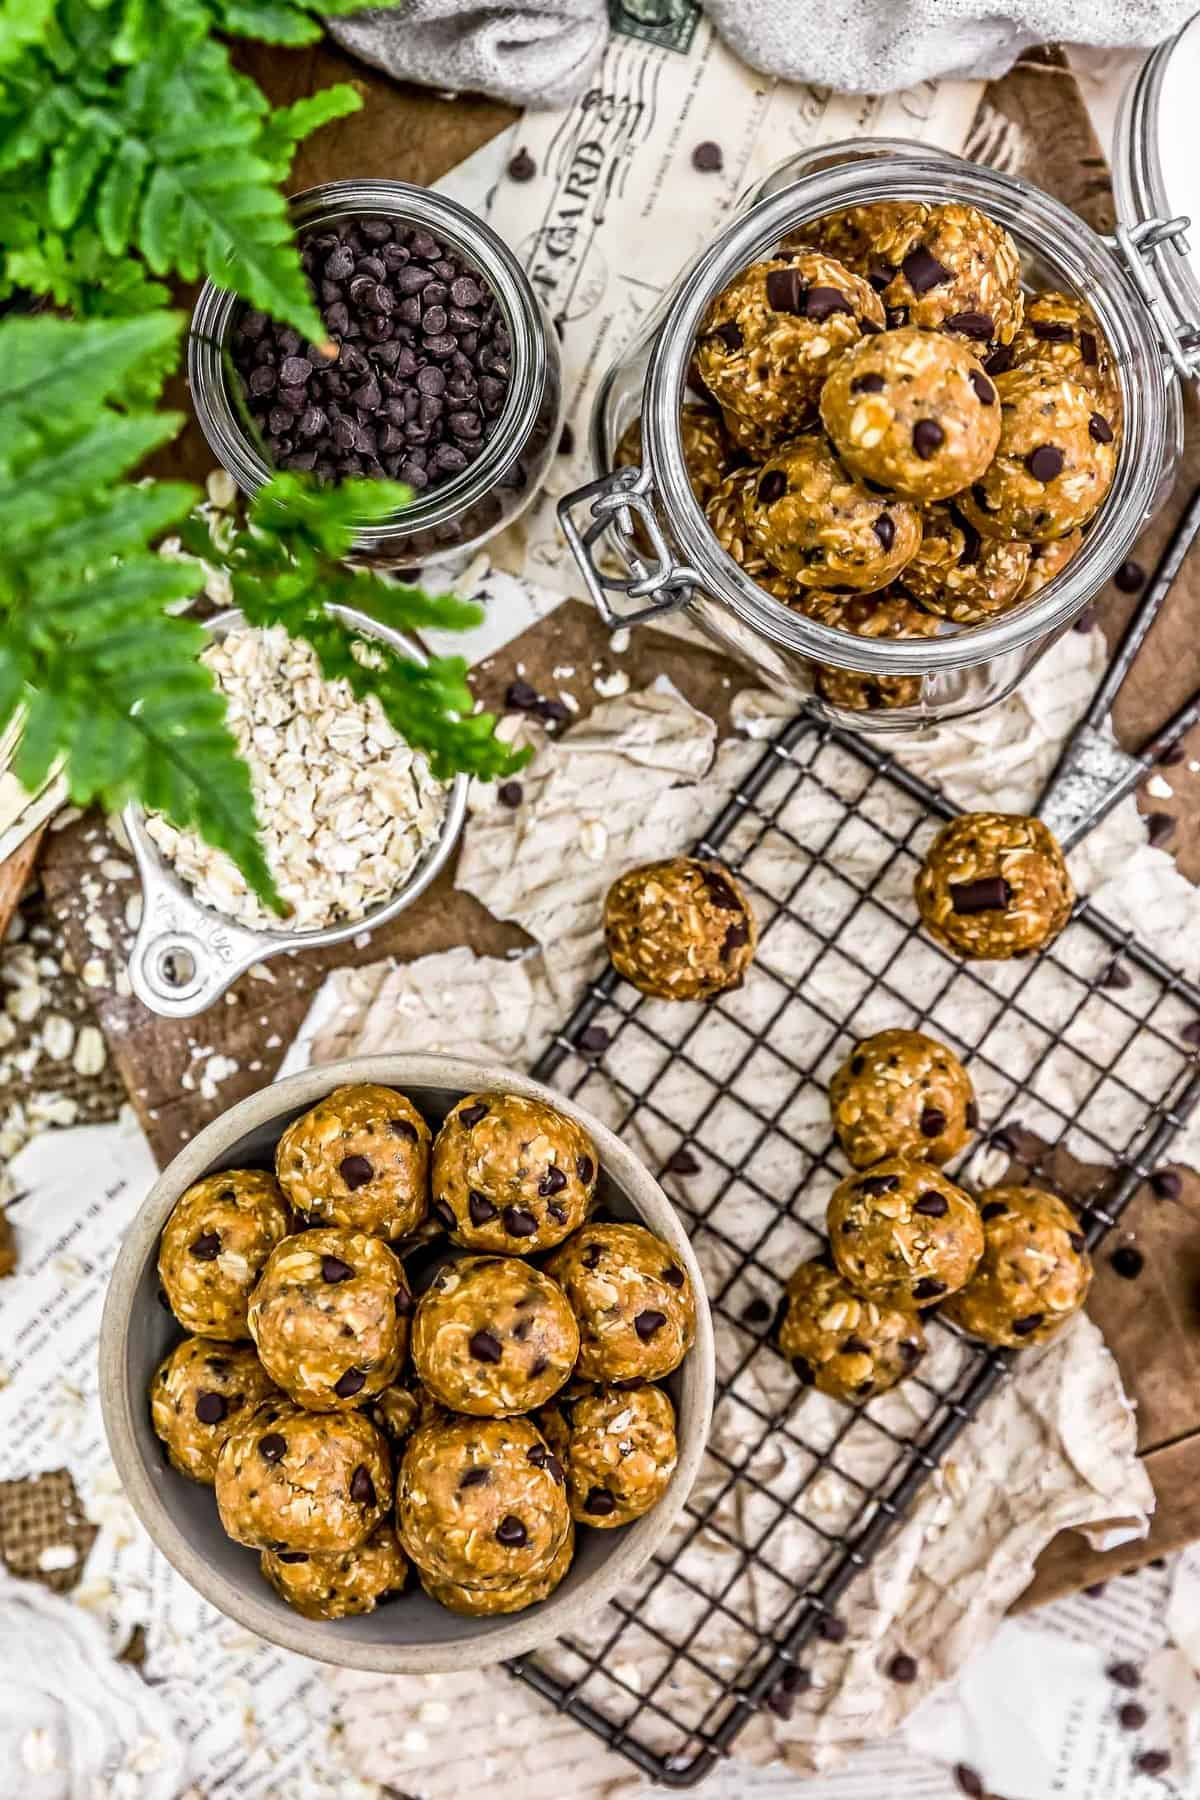 Tablescape of Vegan No-Bake Lactation Cookies